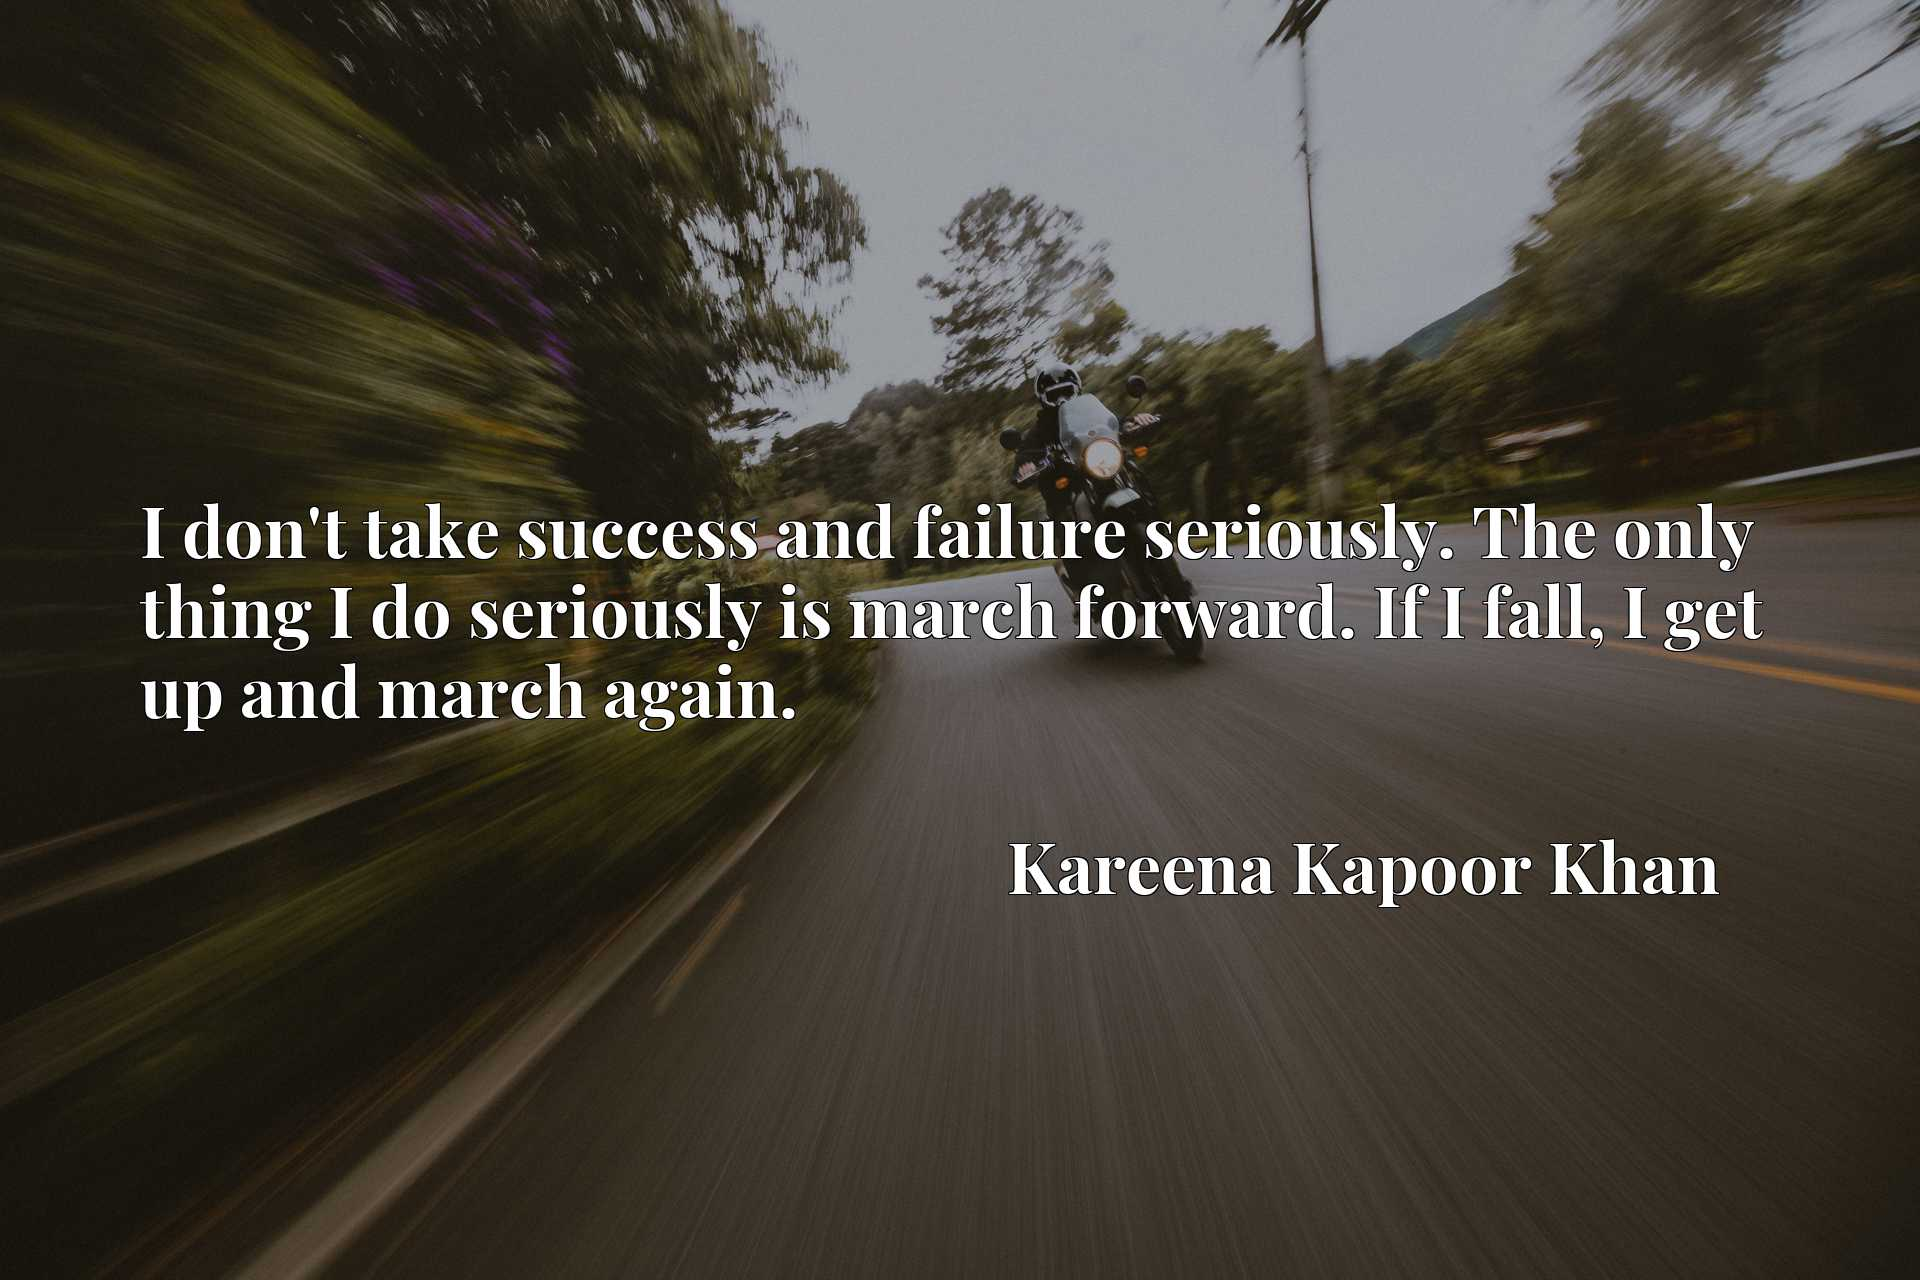 I don't take success and failure seriously. The only thing I do seriously is march forward. If I fall, I get up and march again.